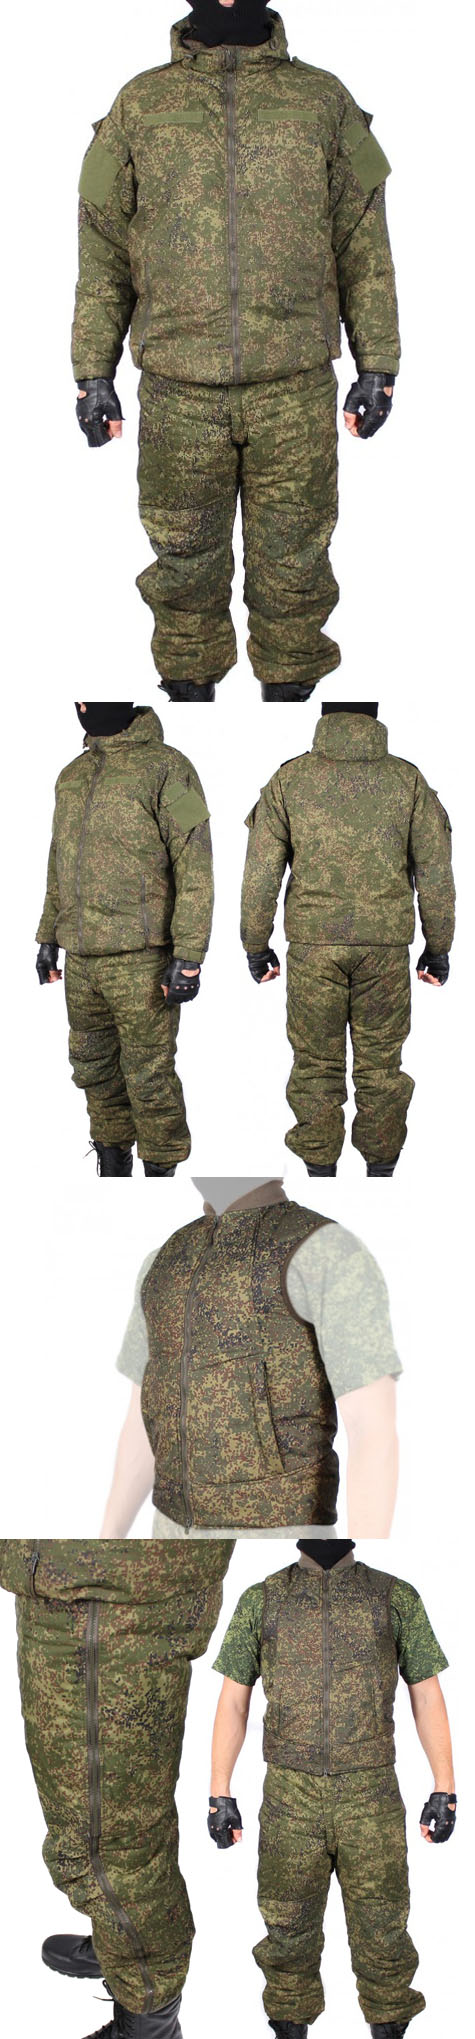 Russian tactical warm winter uniform kit VKBO camo